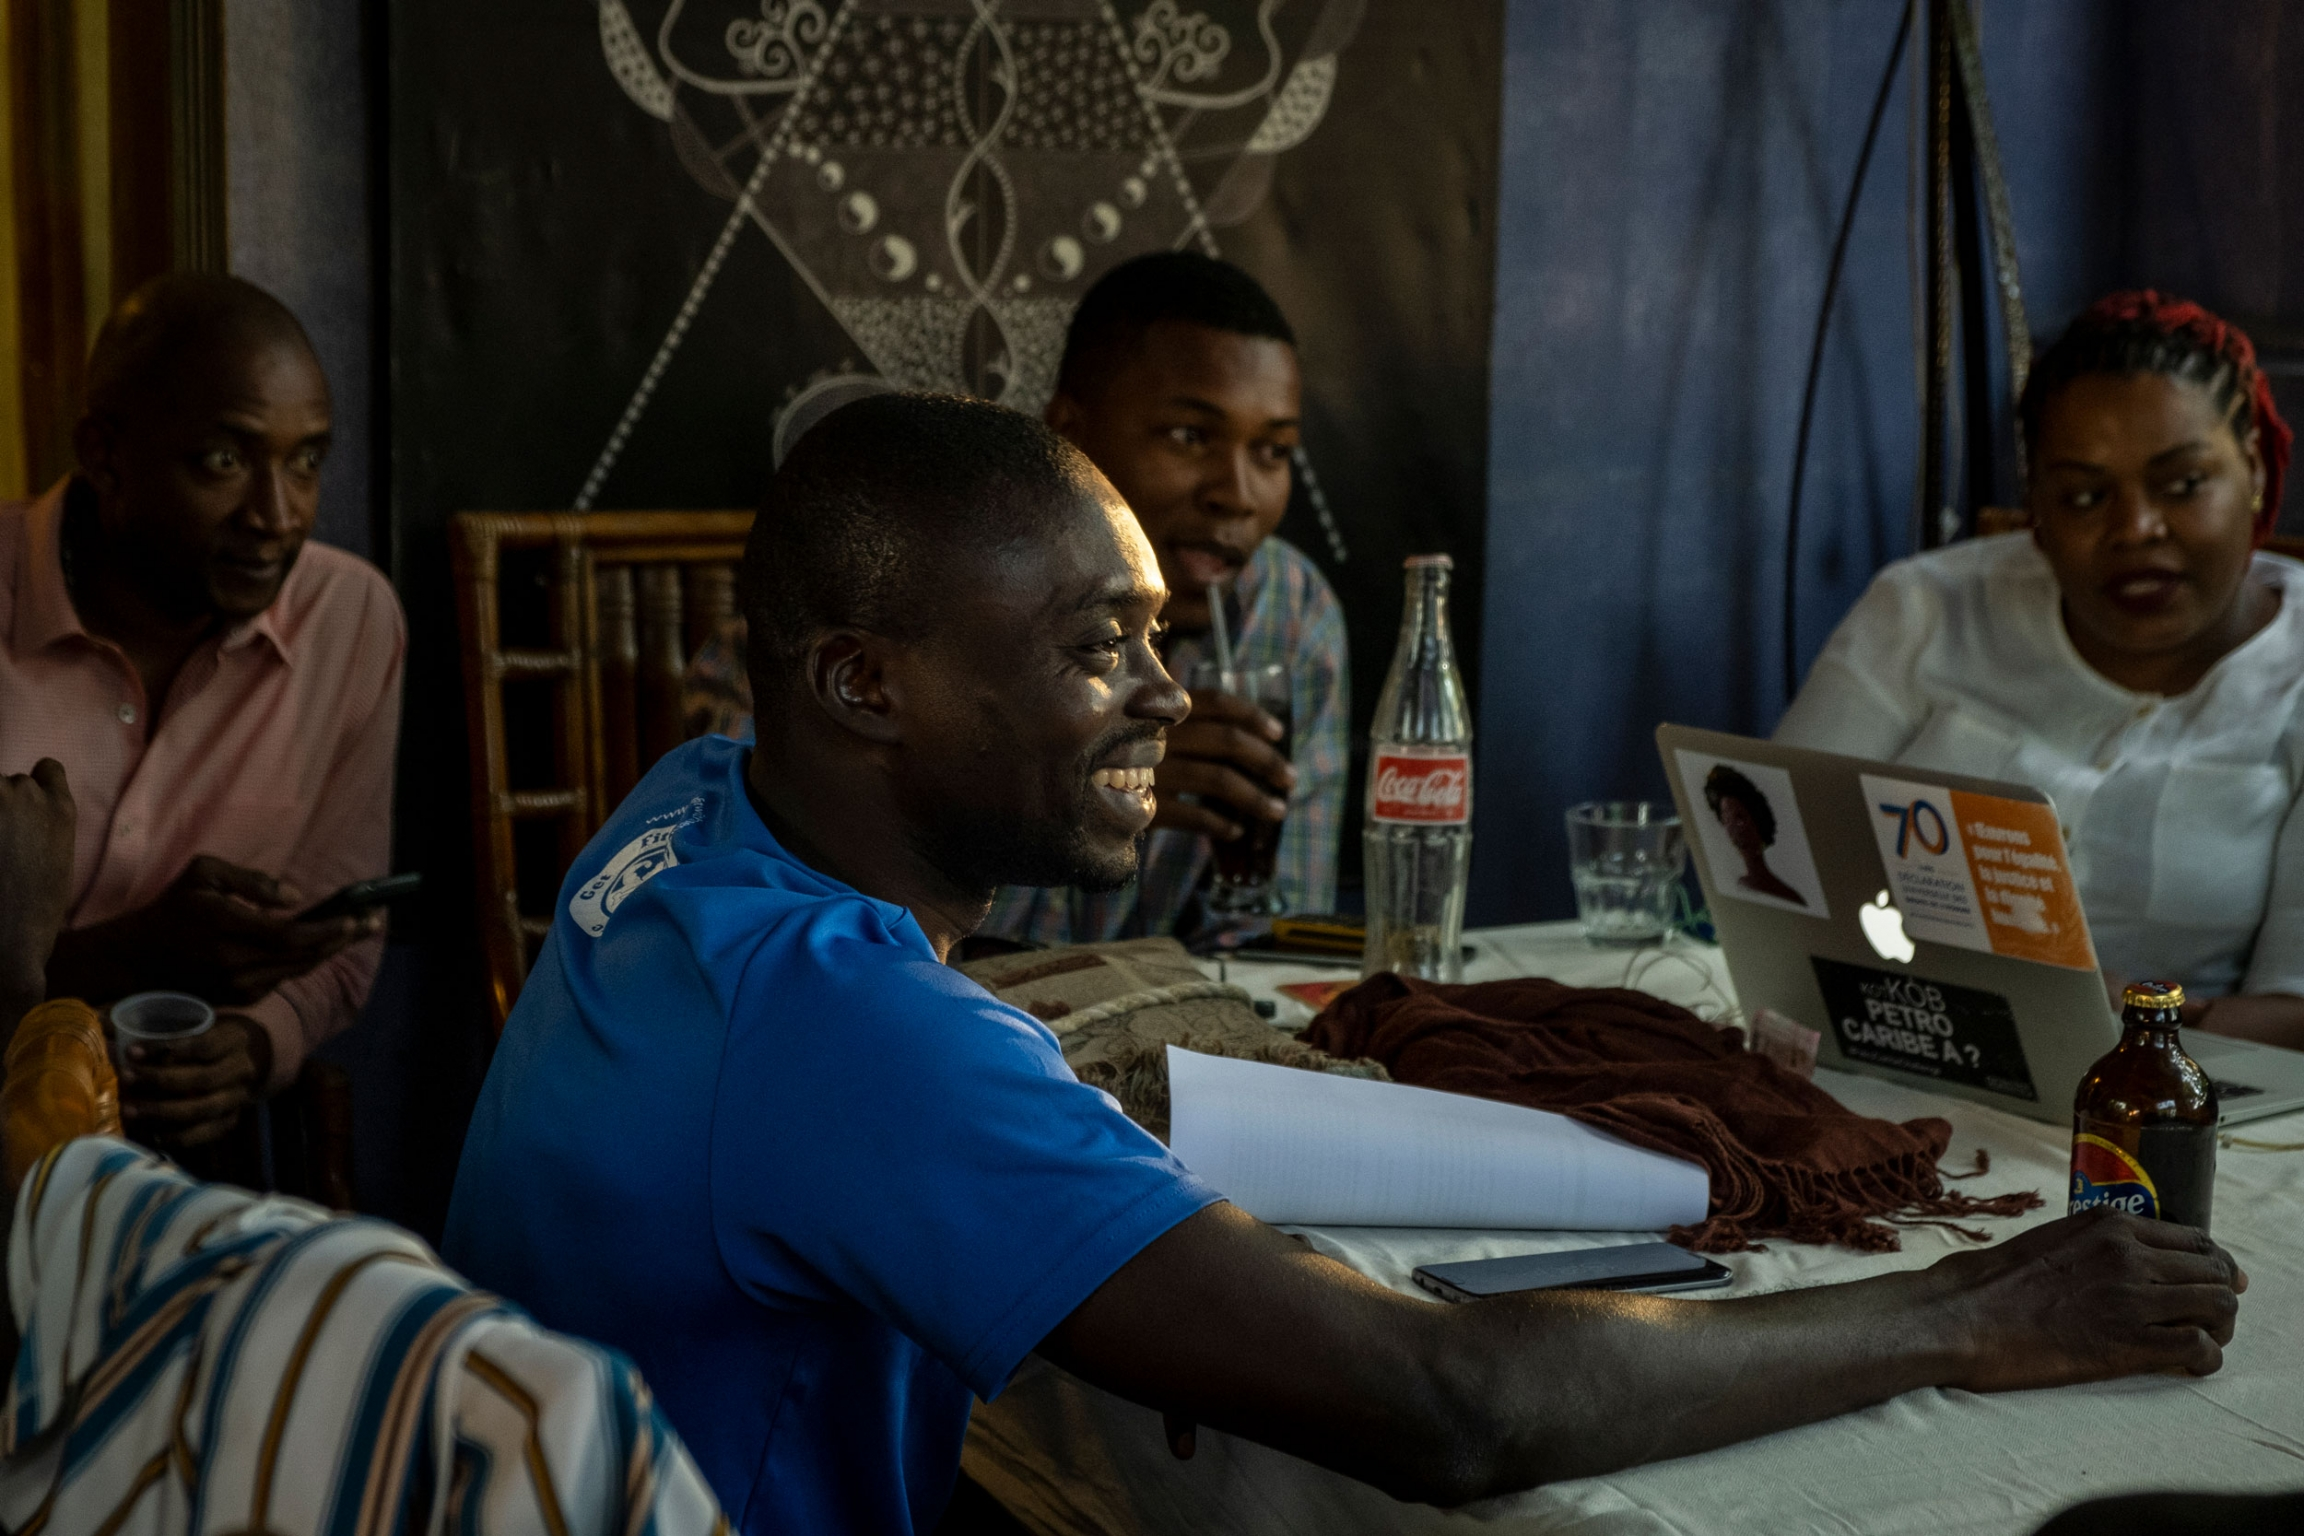 A group of young Haitians are shown sitting around a table with computers, Coke and beer bottles on top.